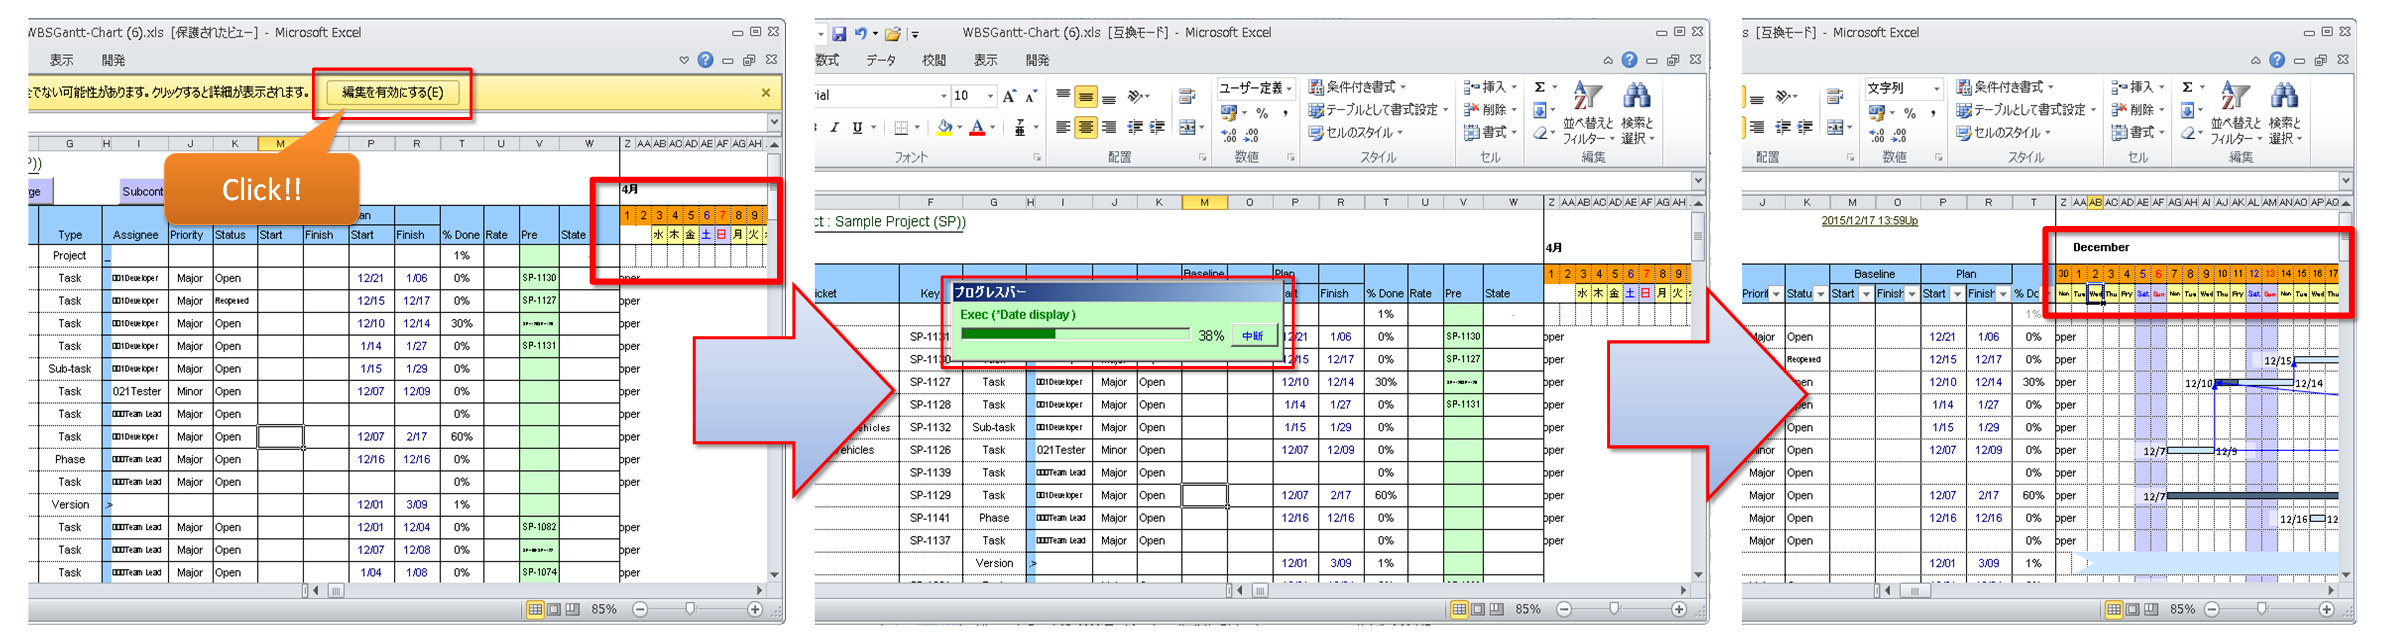 Wbs gantt chart excel export shows japanese sign wbs gantt chart excel export shows japanese sign geenschuldenfo Images